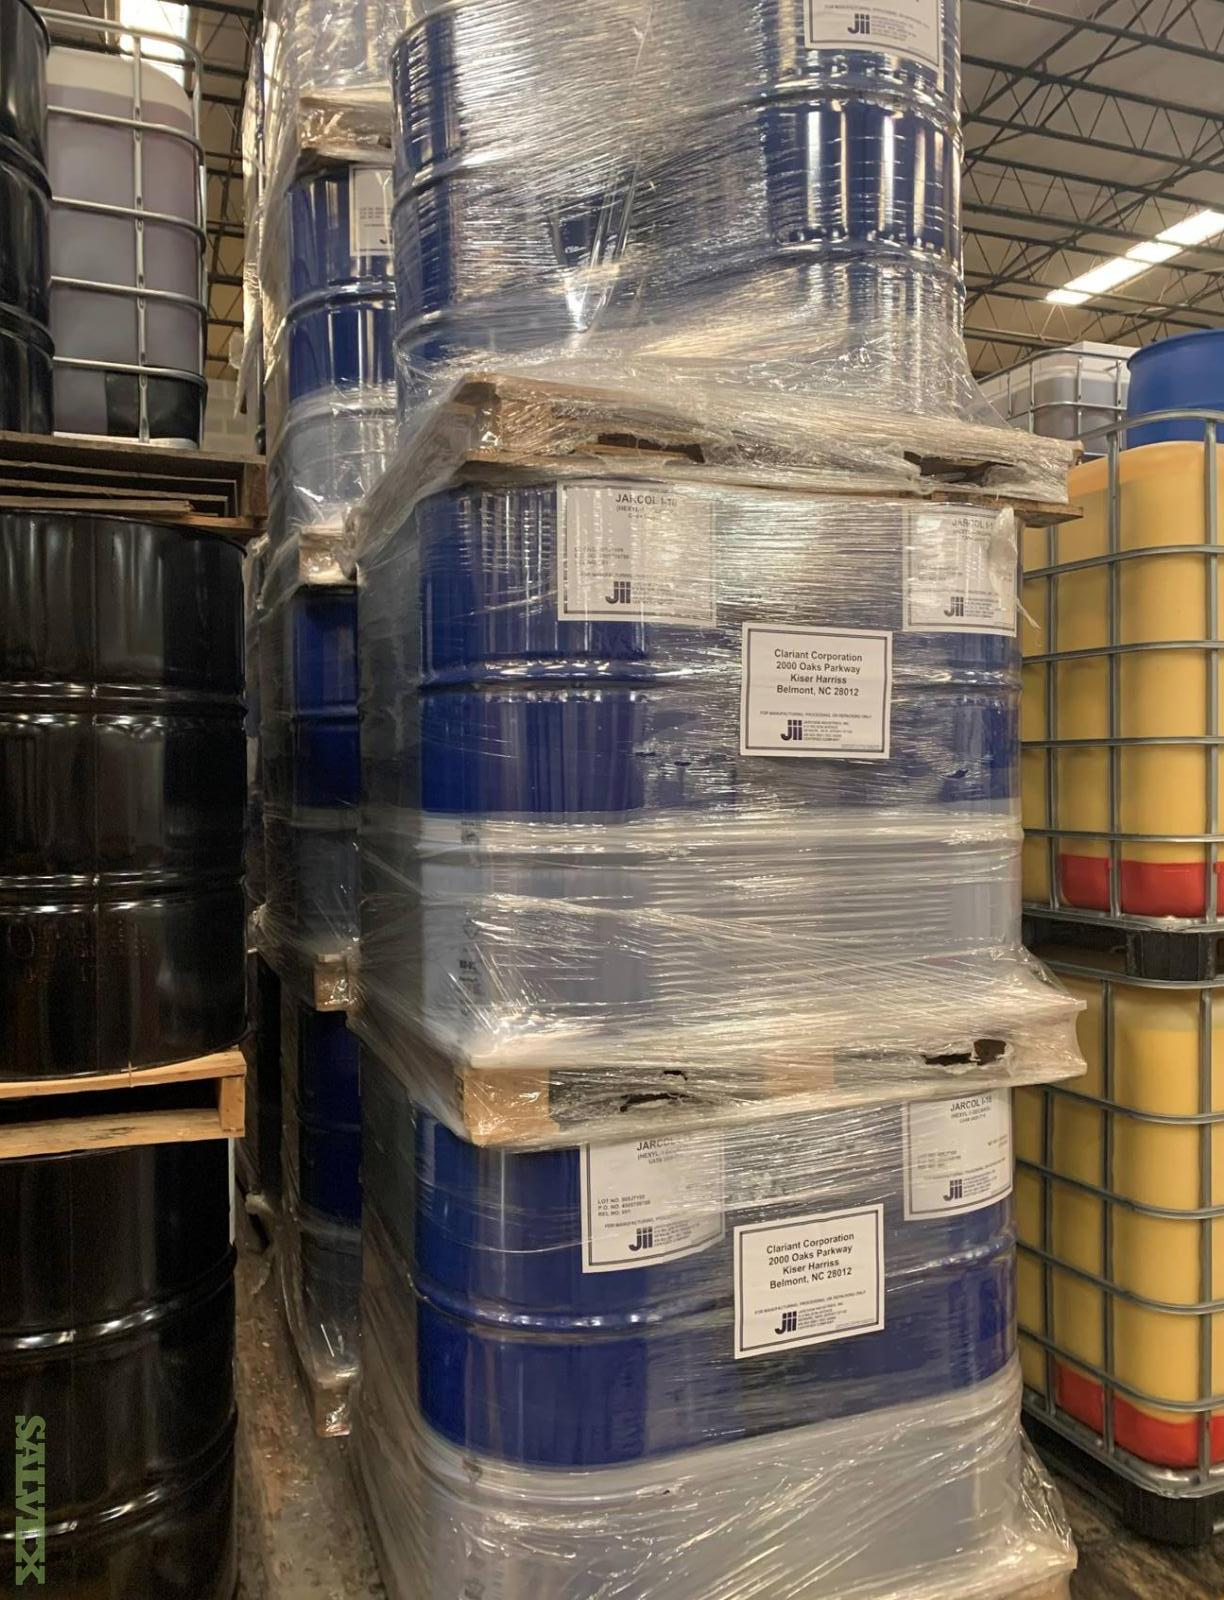 Isocetyl Alcohol (98% Liquid) - Used to Manufacture Cosmetics and Lubricants (7,140 Kgs)